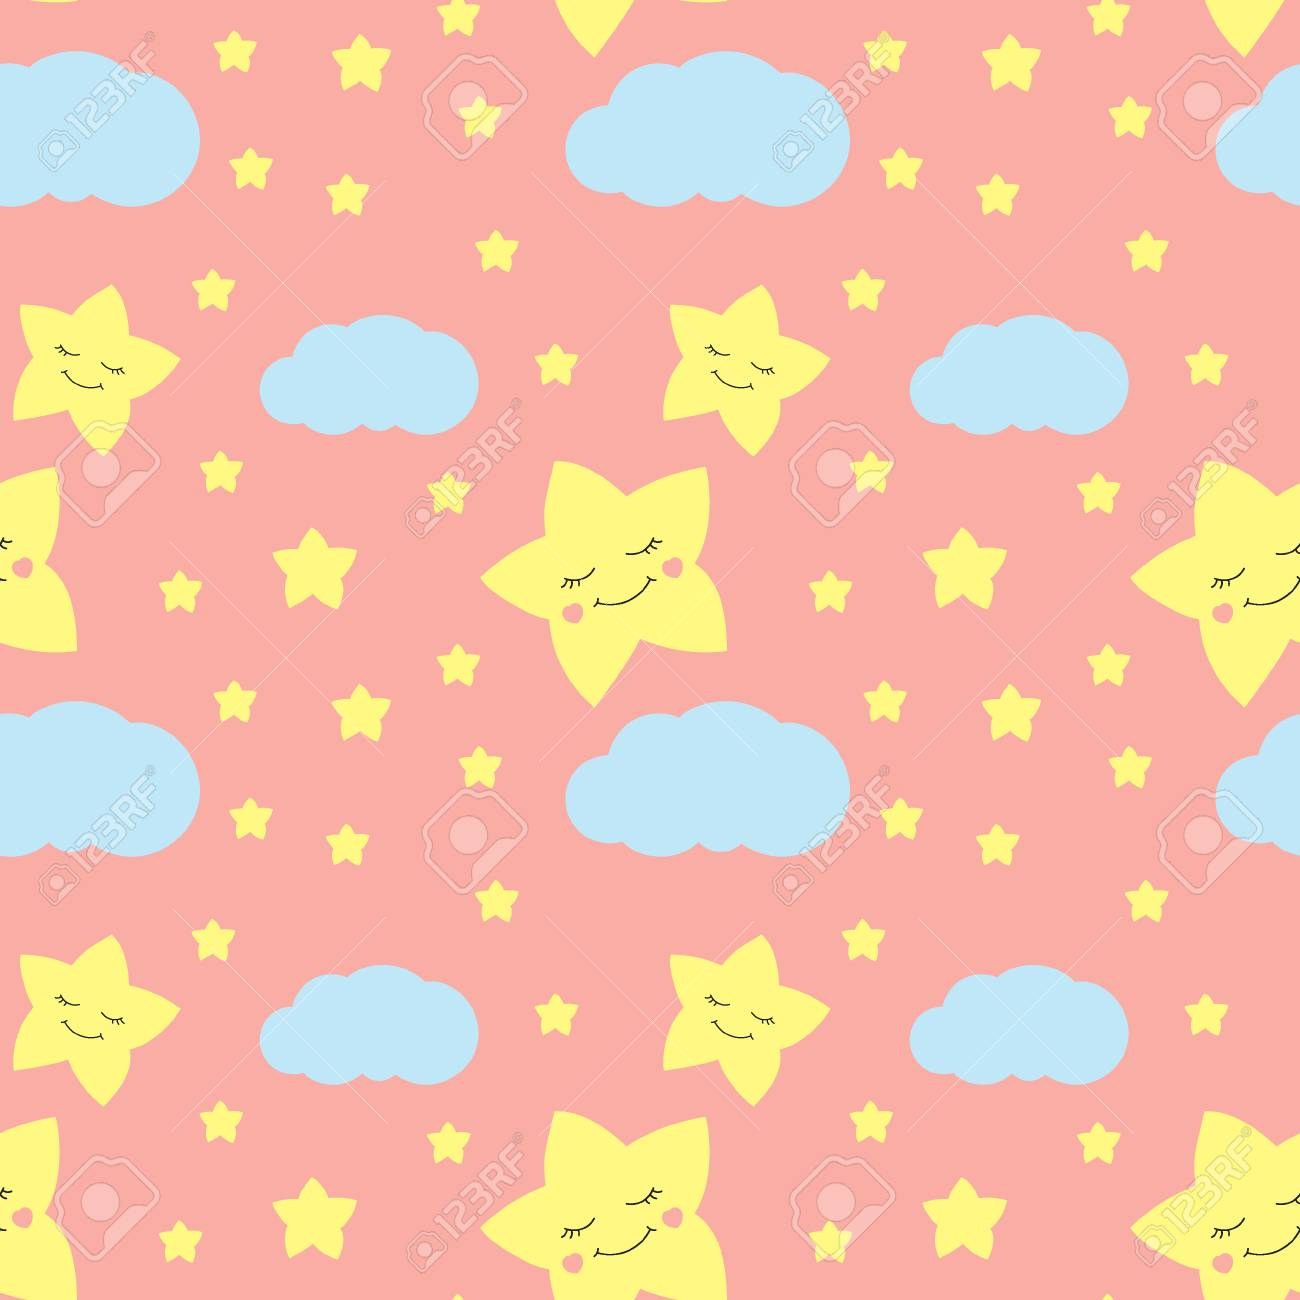 Cute Baby Star Pattern Vector Seamless Girl Print With Eyelash Royalty Free Cliparts Vectors And Stock Illustration Image 90533379